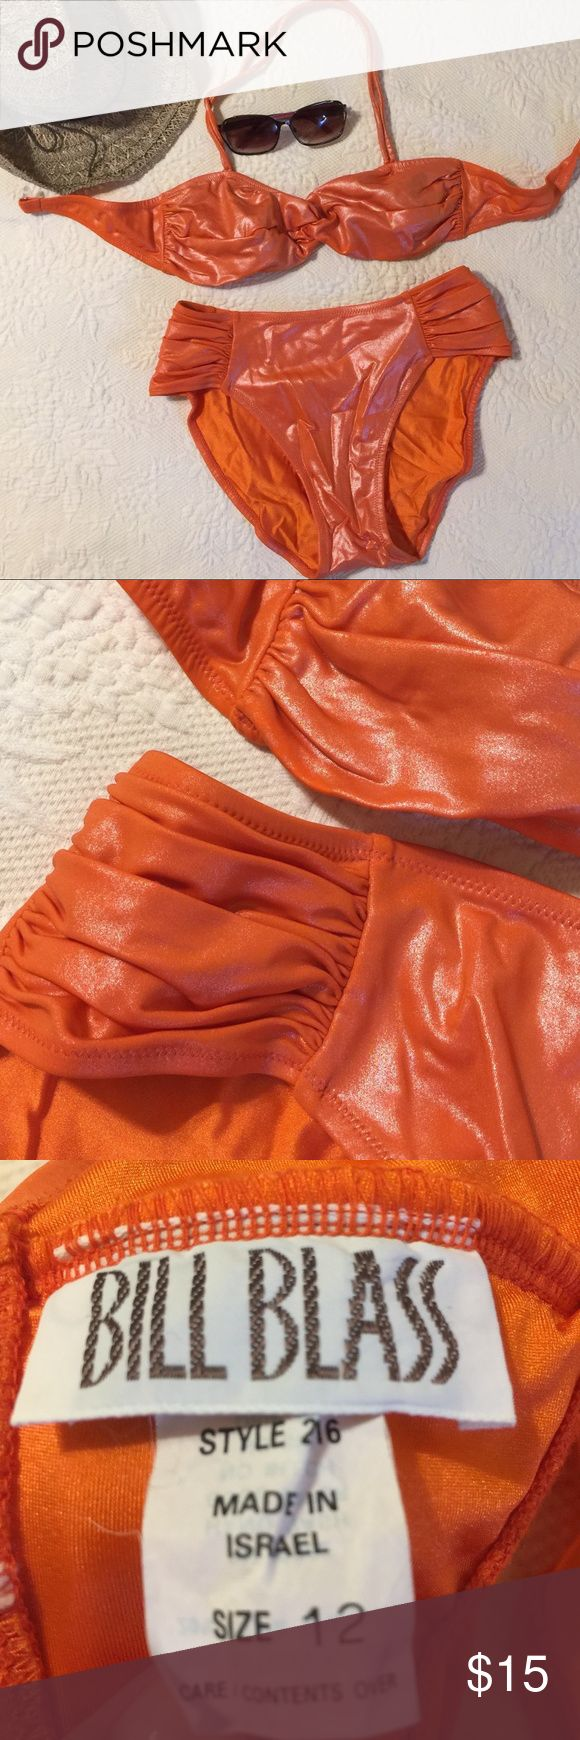 2 Piece Orange Swimsuit 2 Piece Orange Swimsuit -A stand out, eye stopping 2 piece swimsuit made of a shimmery spandex/lycra material to hold everything in place! Gorgeous! New, never worn NWOT Bill Blass Swim